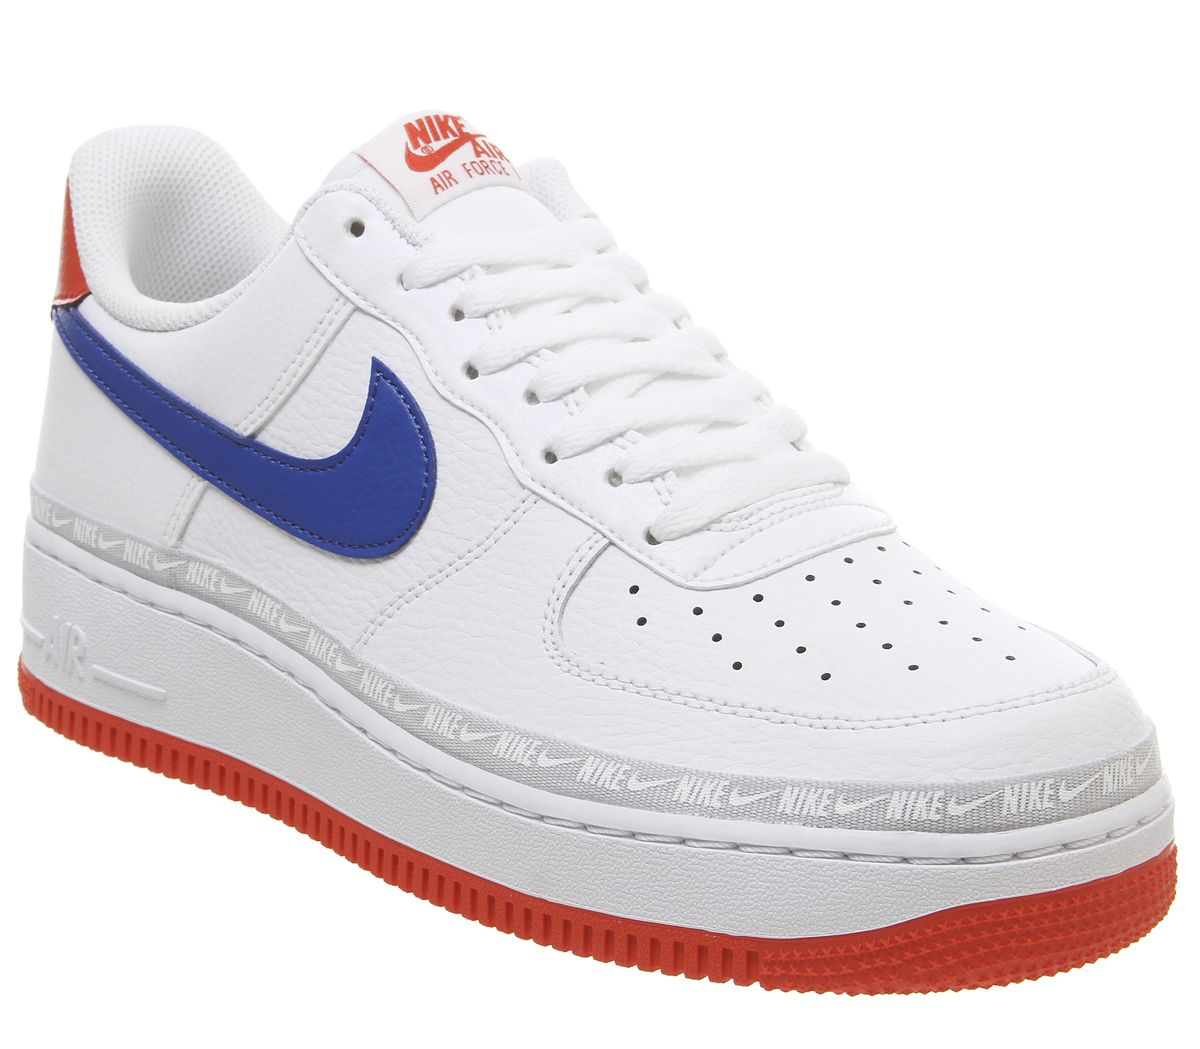 best service c5d21 c9989 Nike Air Force 1 07 Trainers White Red Blue Gel - His trainers